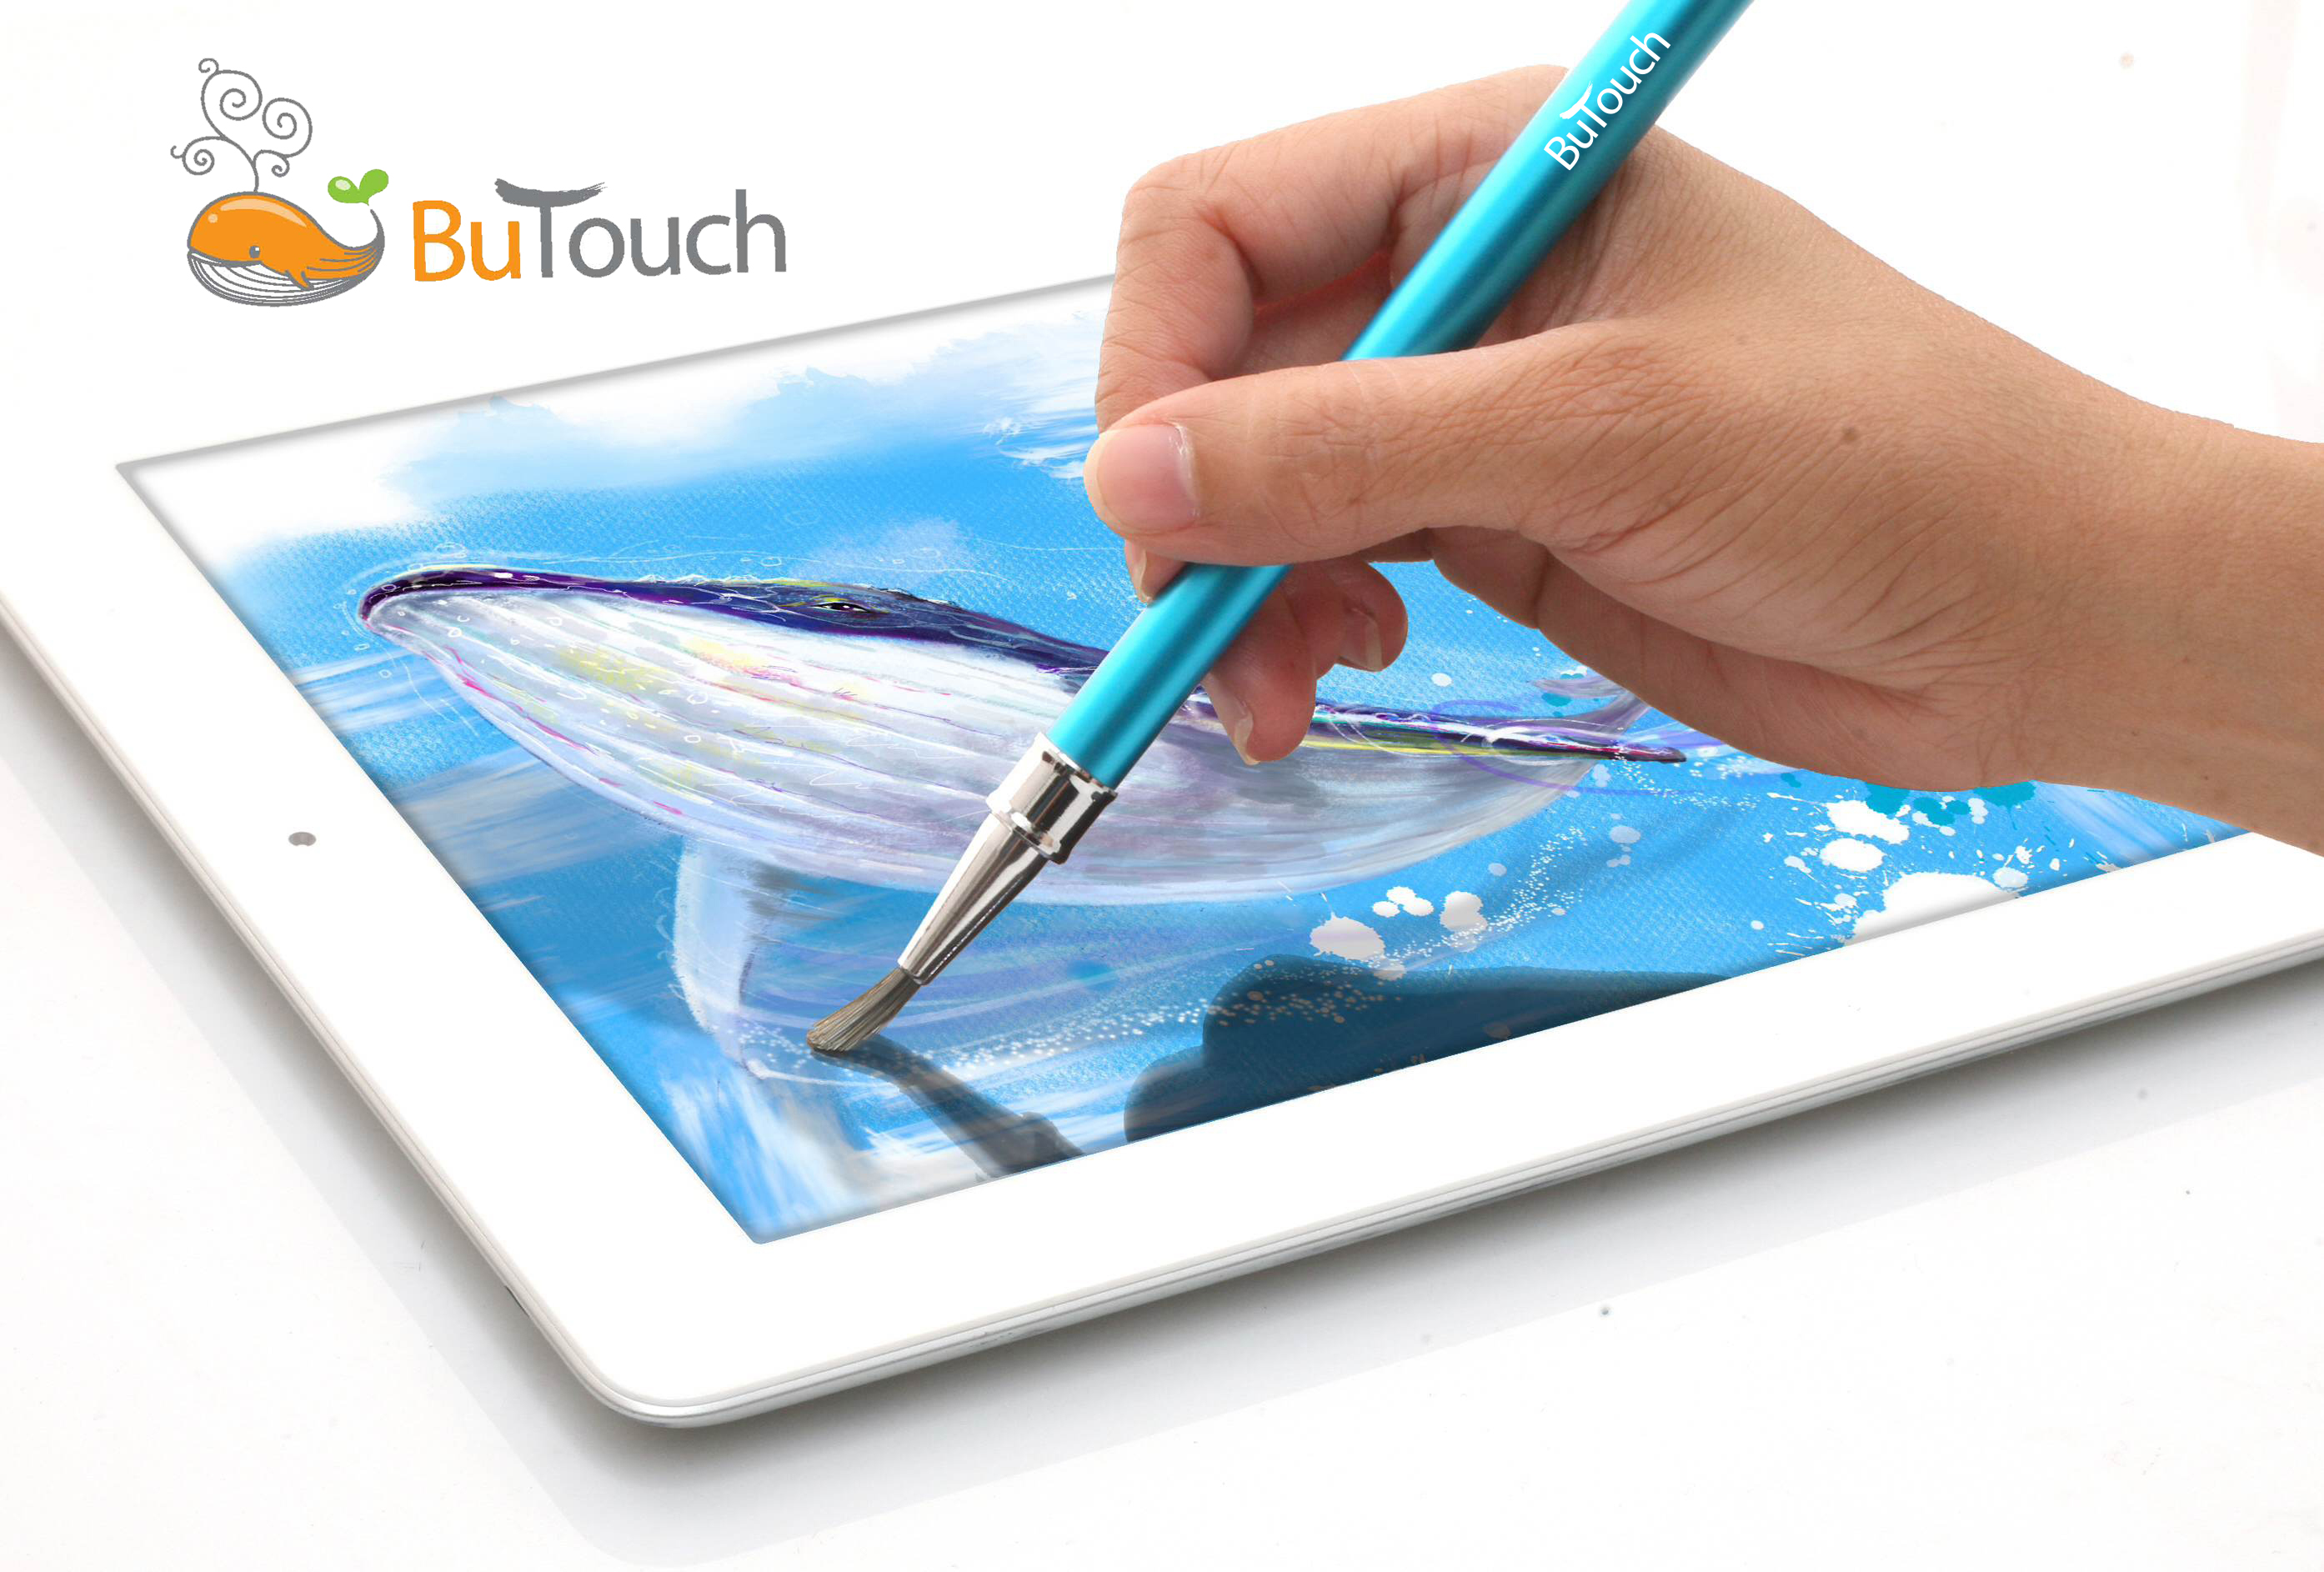 [Blue] Butouch Digital Painting Brush